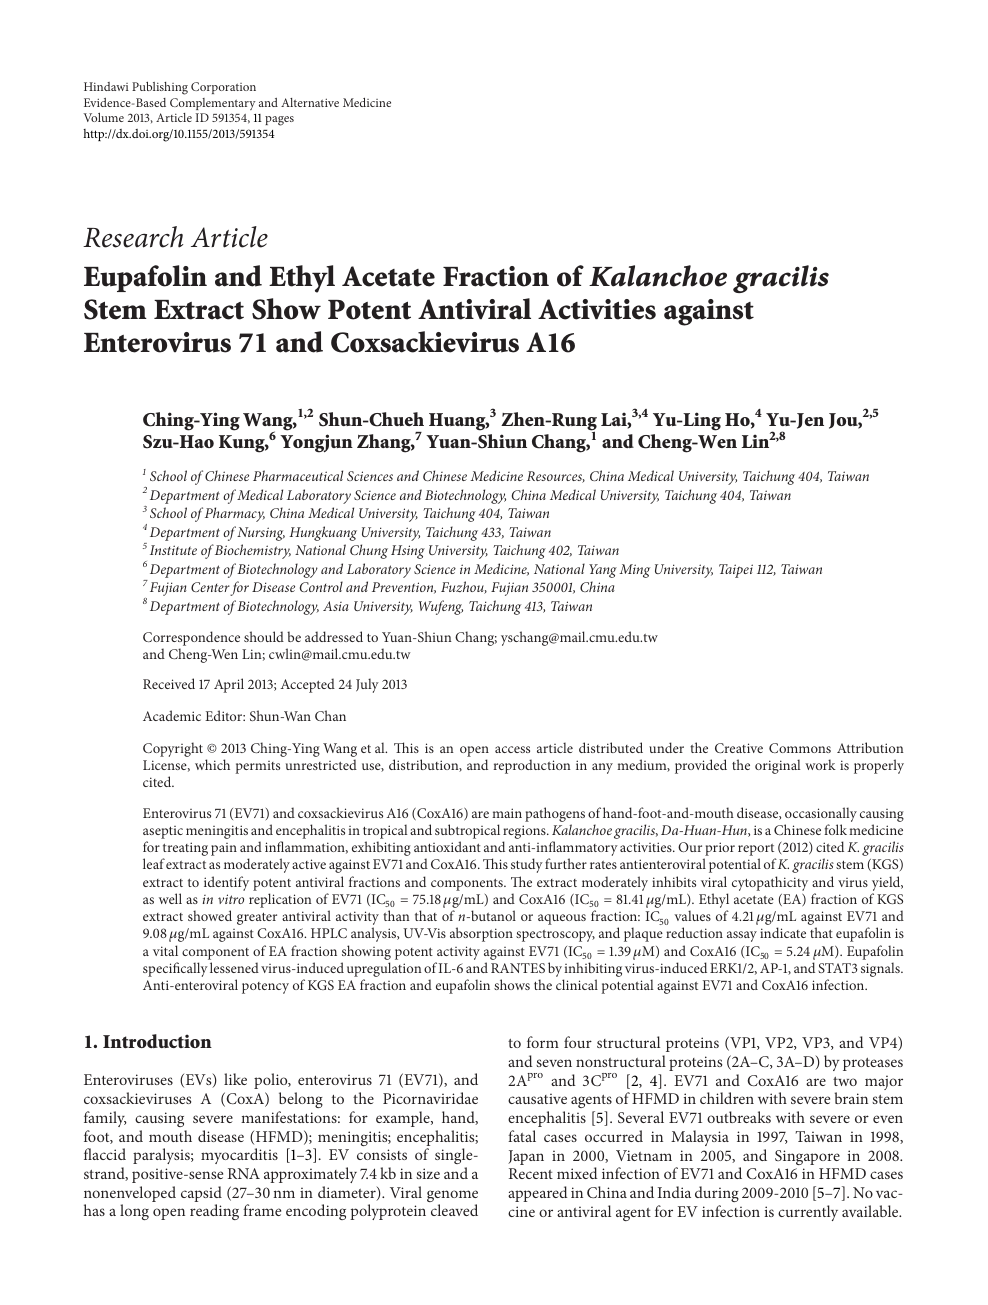 Eupafolin And Ethyl Acetate Fraction Of Kalanchoe Gracilis Stem Extract Show Potent Antiviral Activities Against Enterovirus 71 And Coxsackievirus A16 Topic Of Research Paper In Biological Sciences Download Scholarly Article Pdf